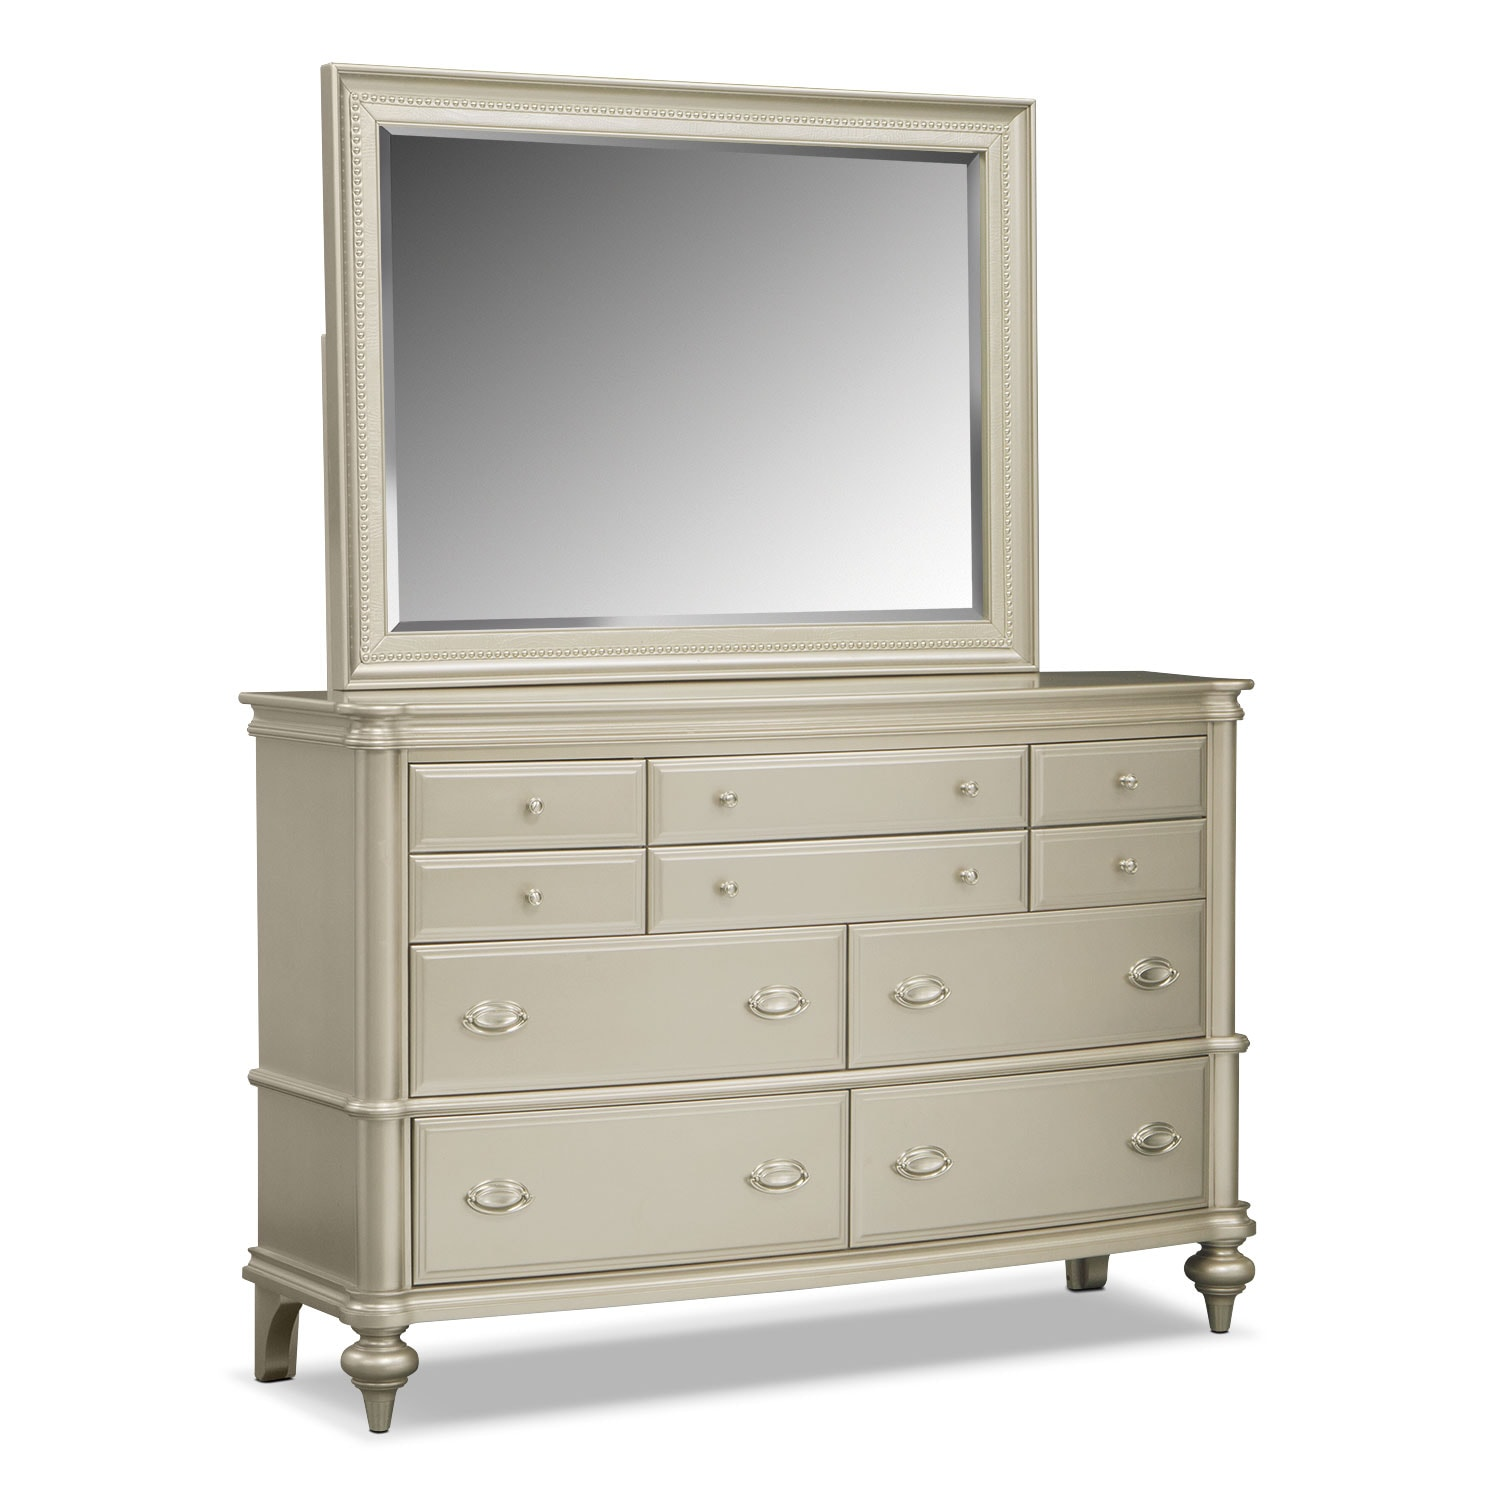 The Esquire Bedroom Collection Platinum Value City